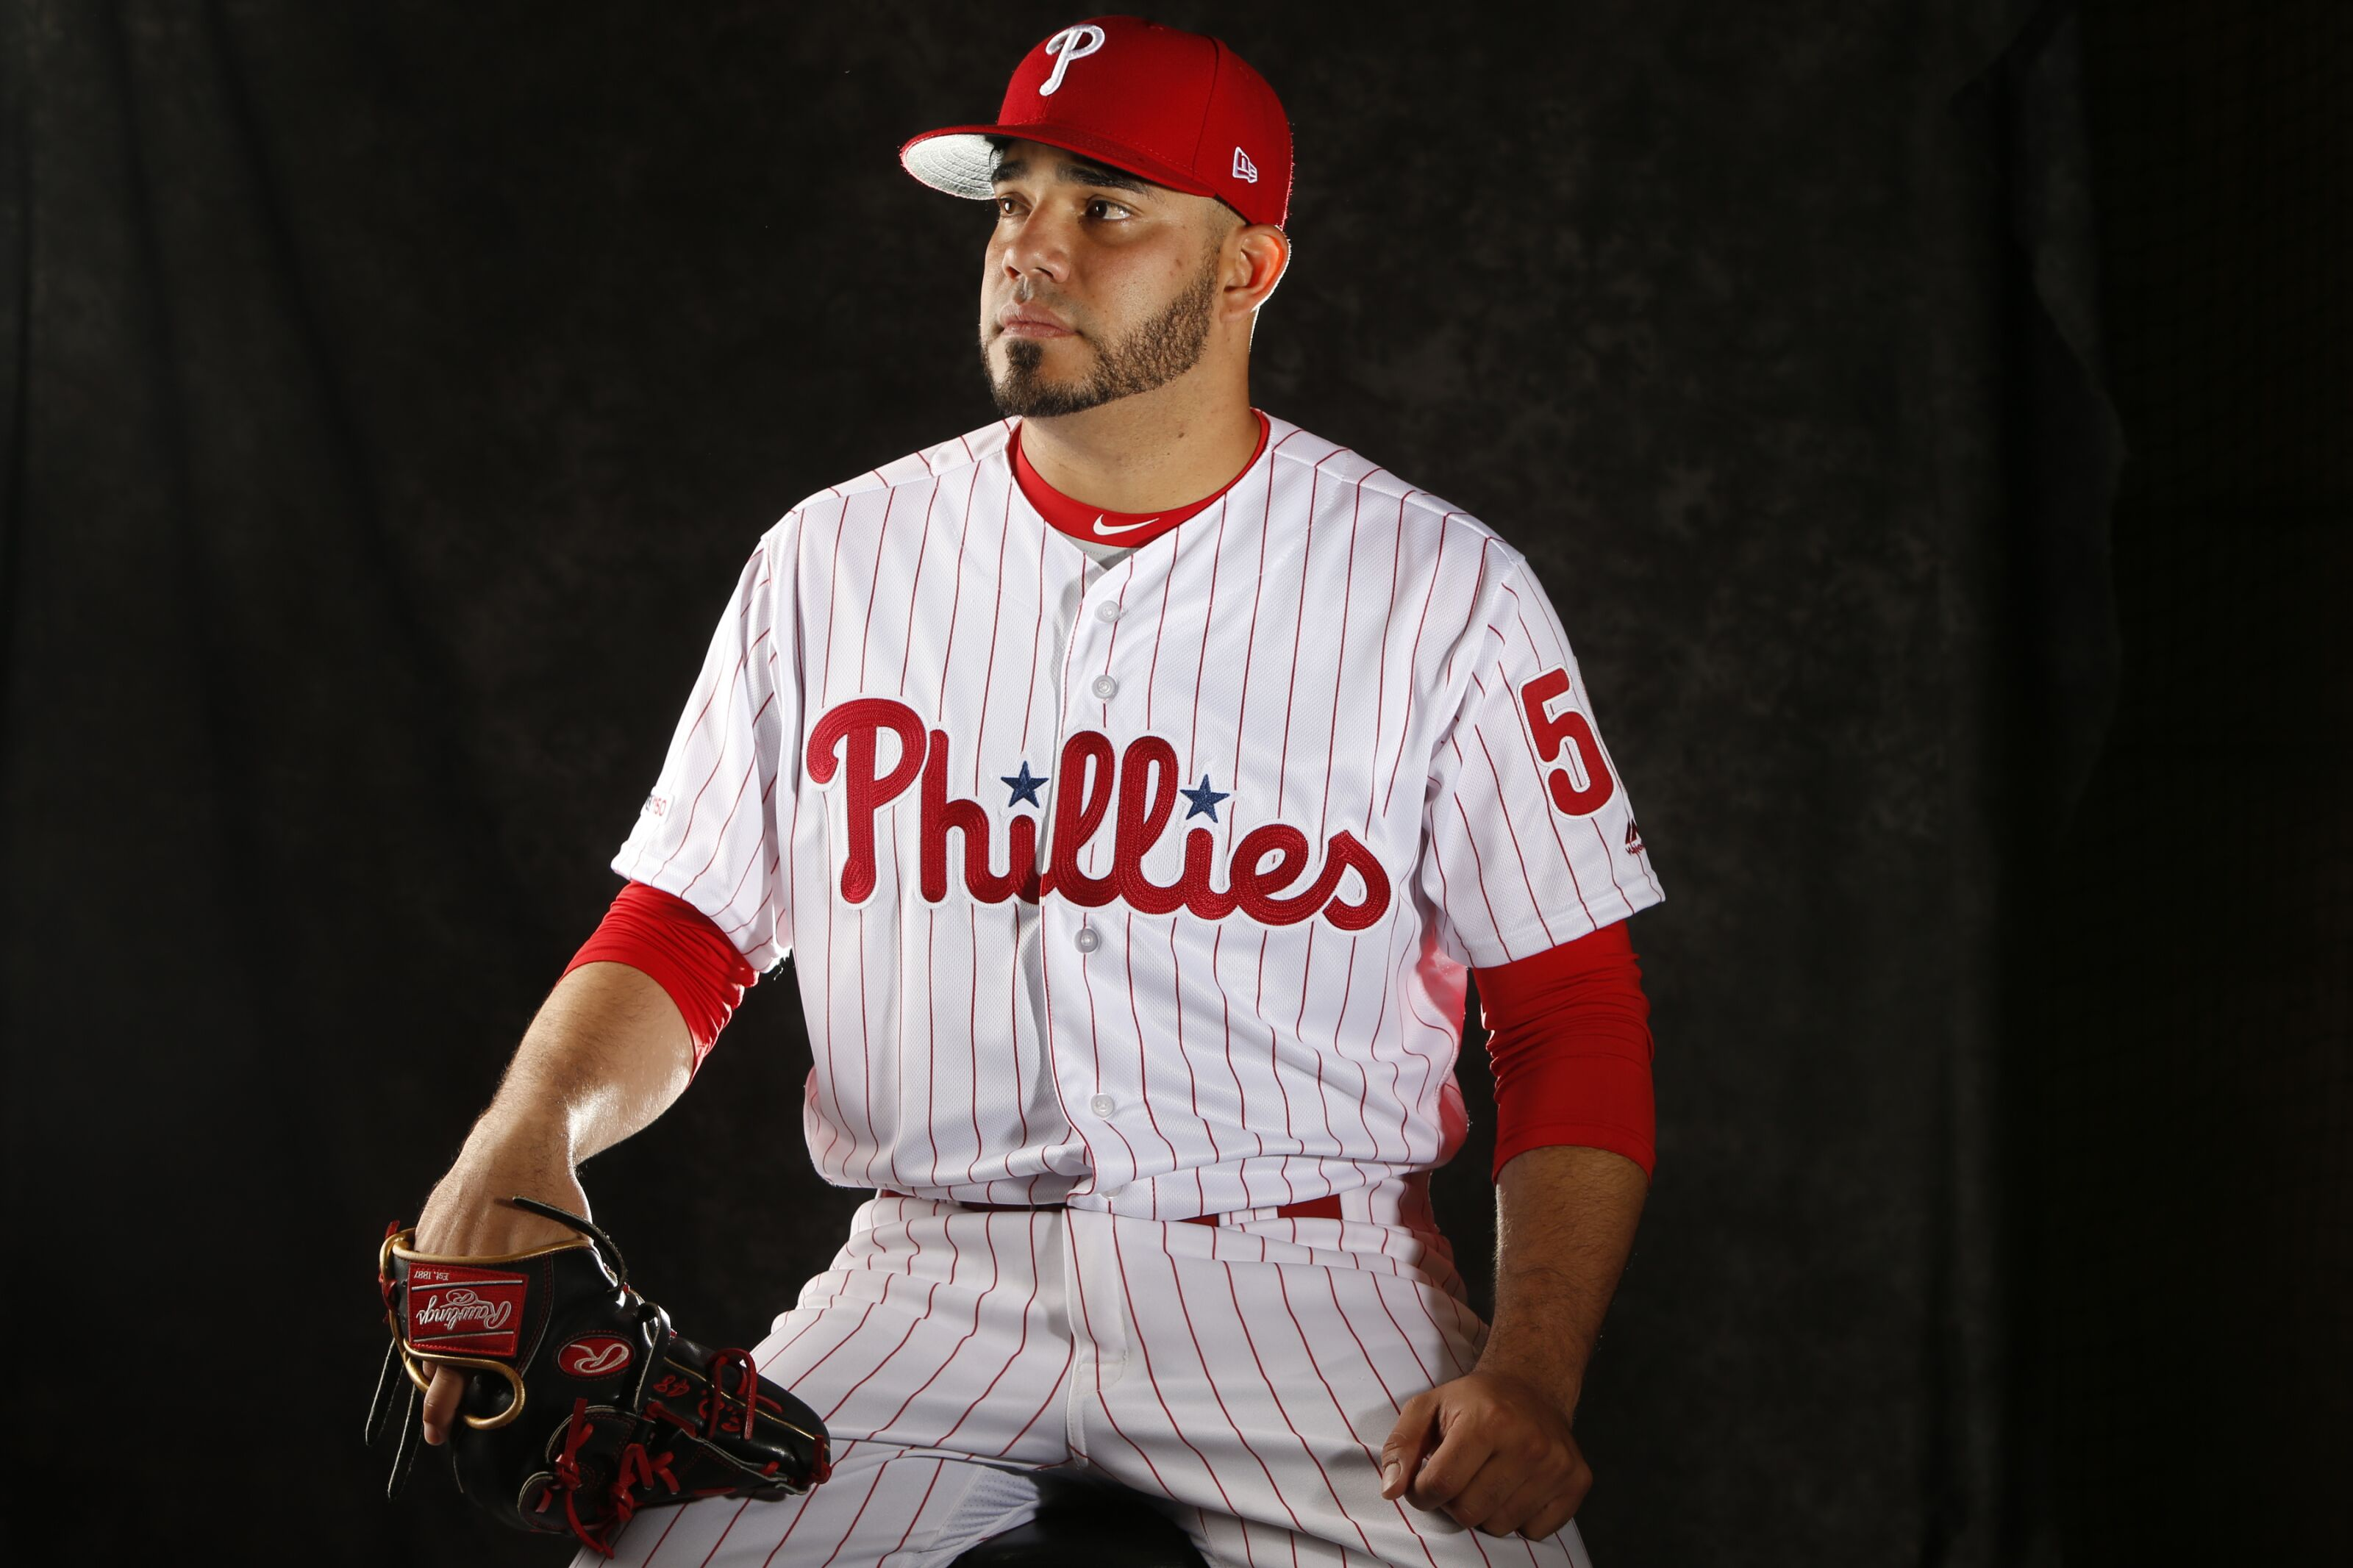 Phillies: Thinking some rosy thoughts about those pitchers